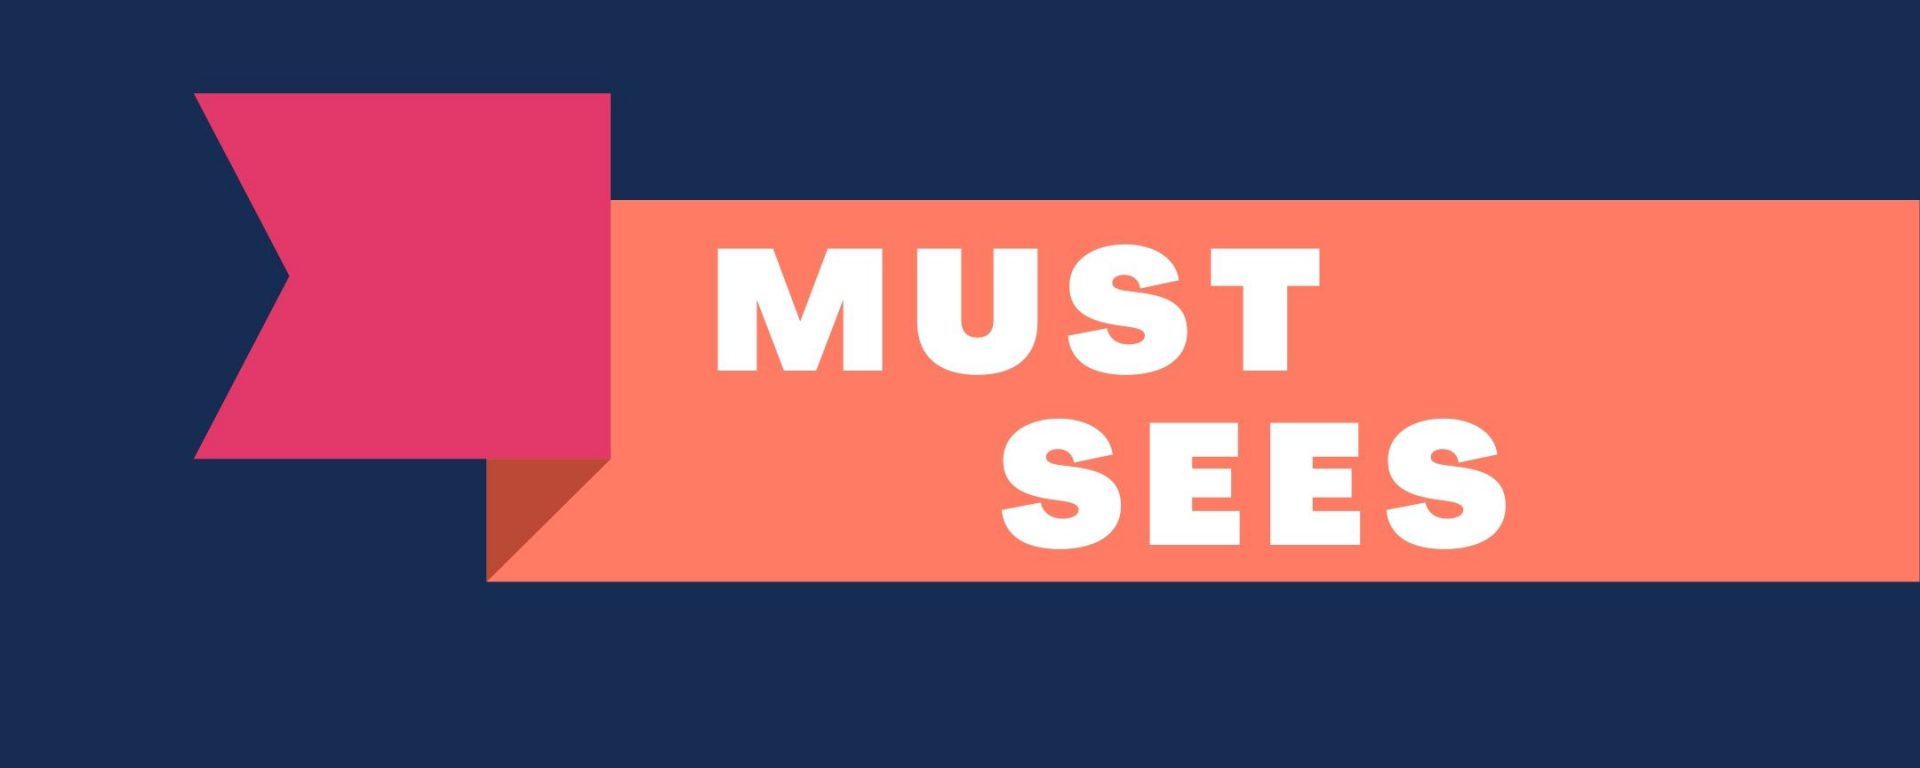 SUHSD Must-Sees Featured